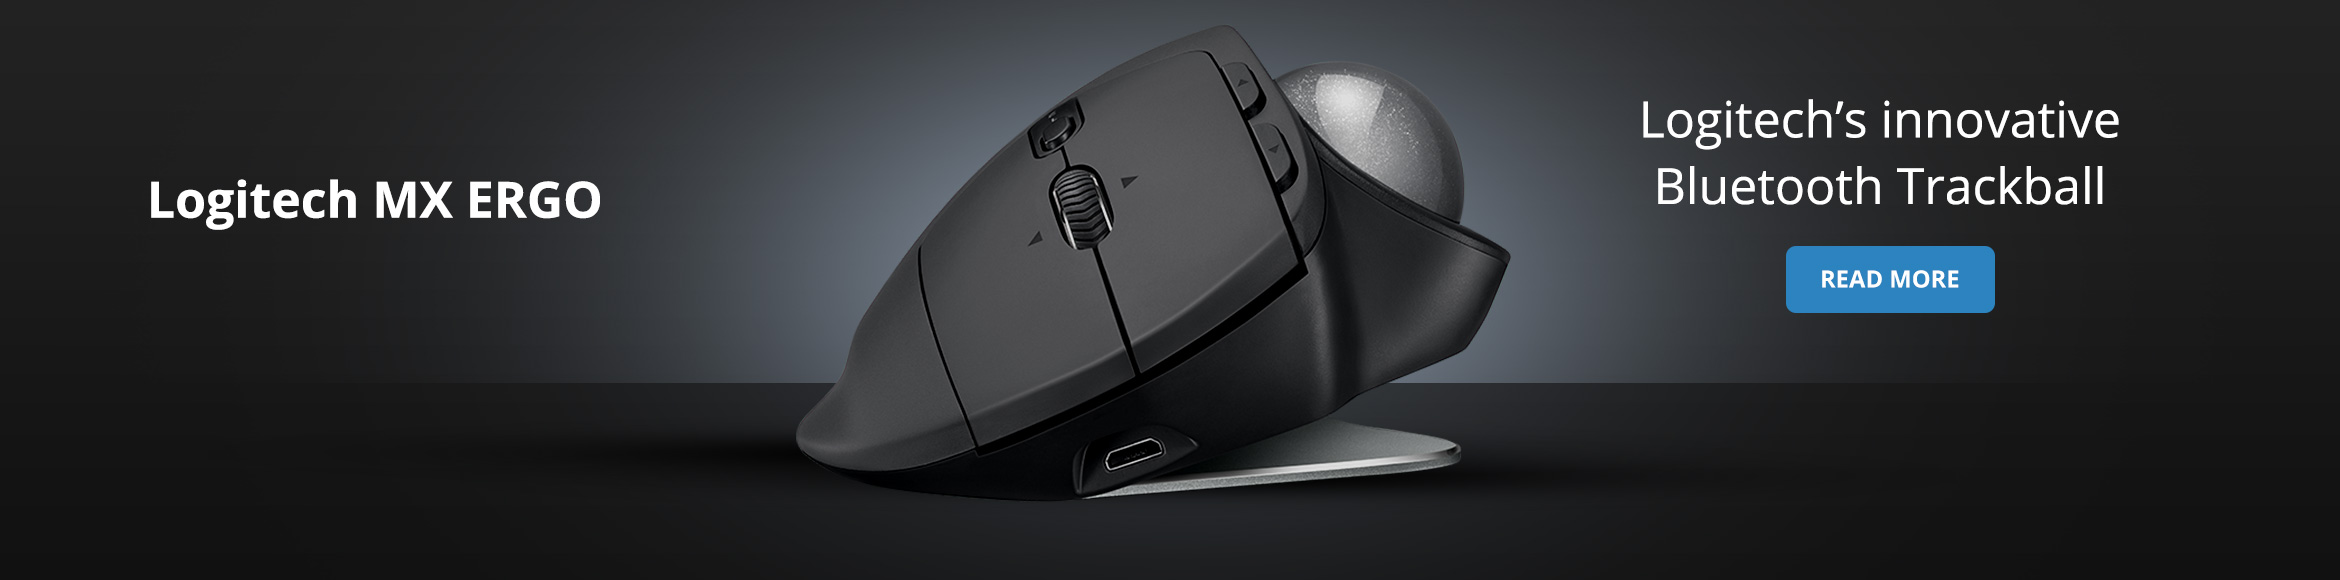 Trackball Mouse Reviews